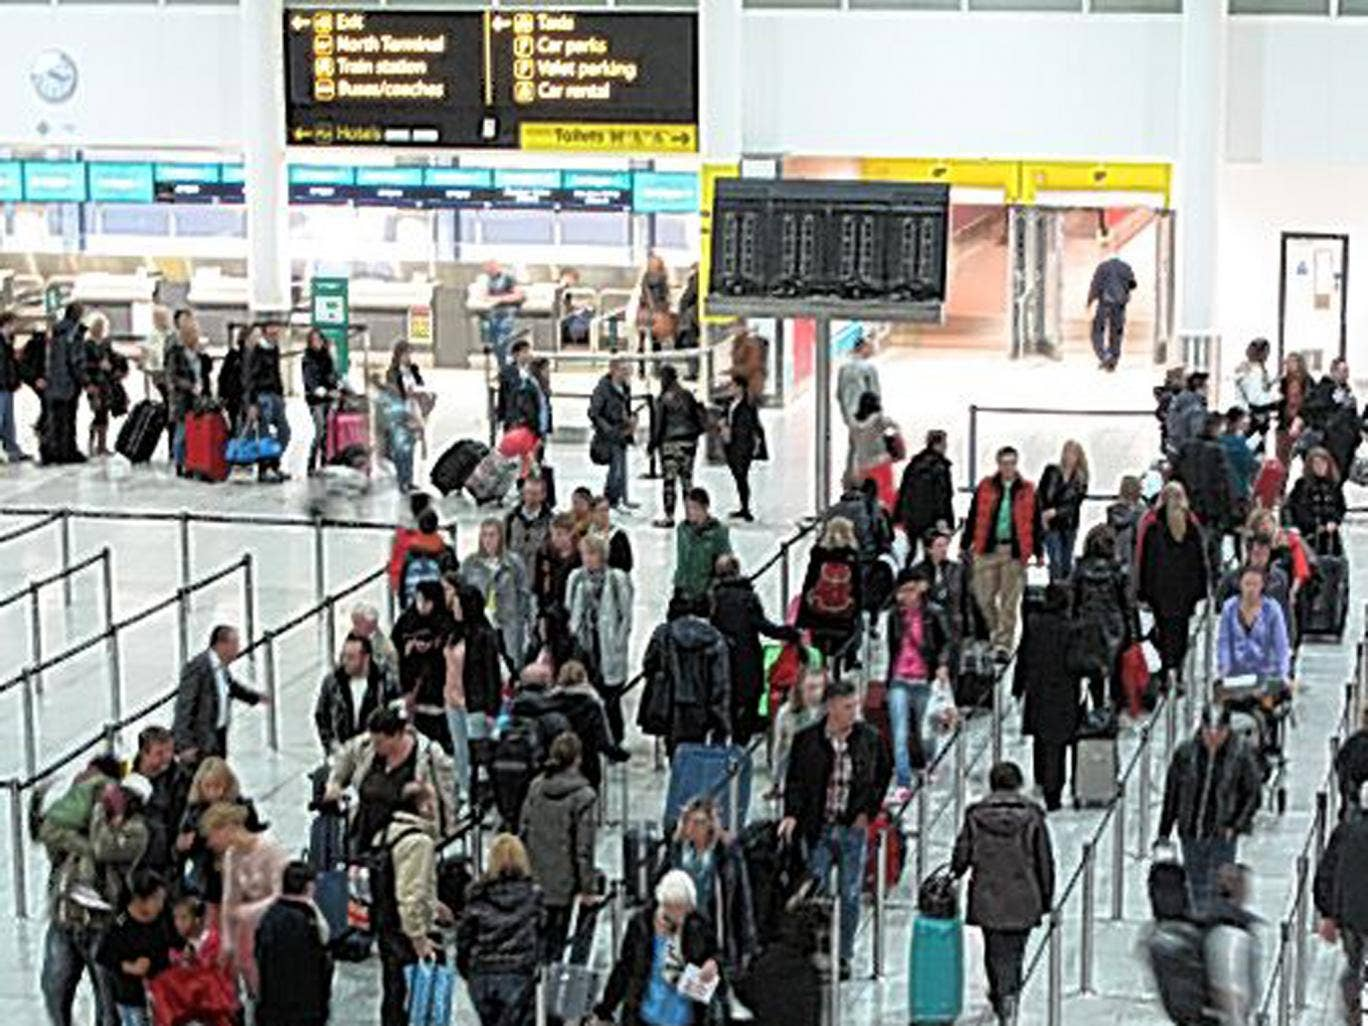 Uneasy situation: passengers stranded at Gatwick this week